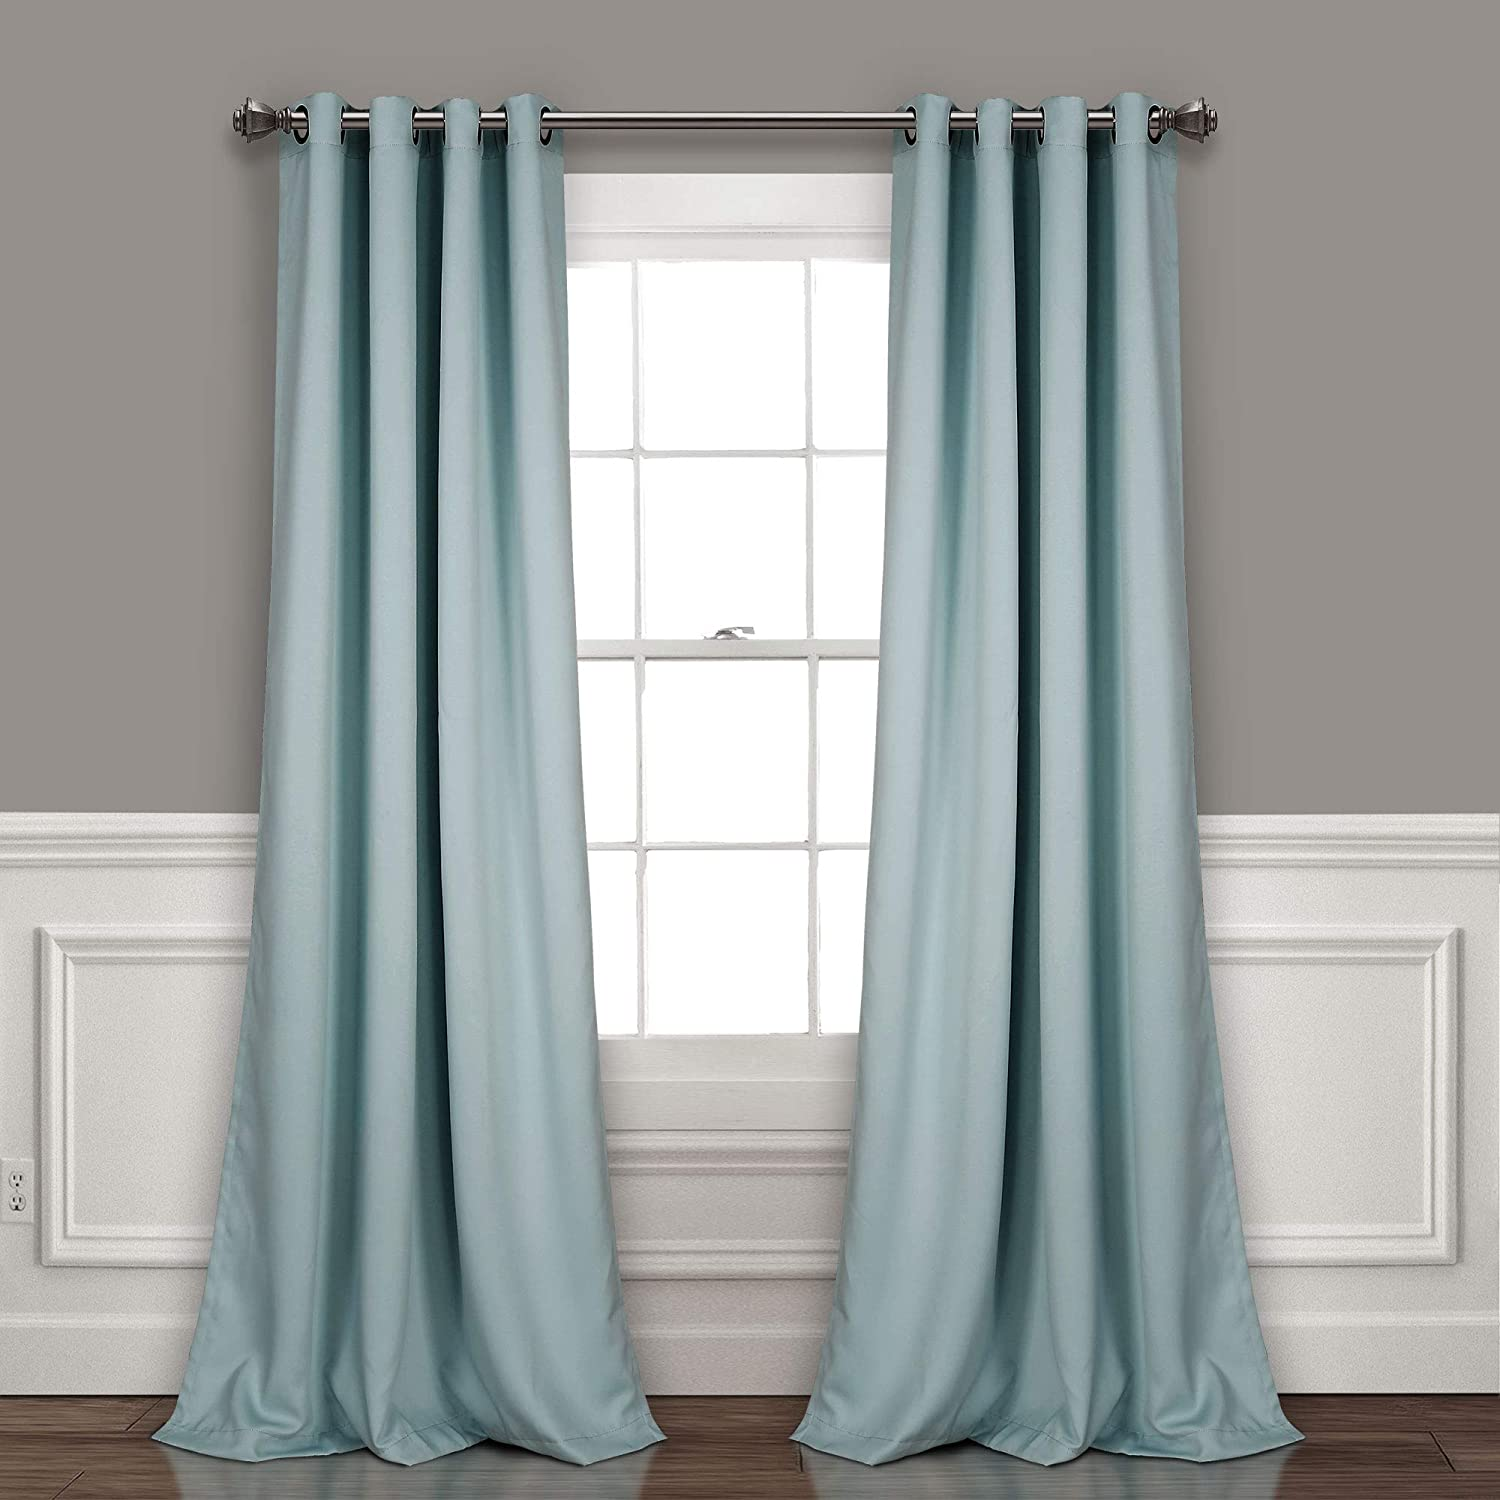 Lush Decor Curtains-Grommet Panel with Insulated Blackout Lining, 95